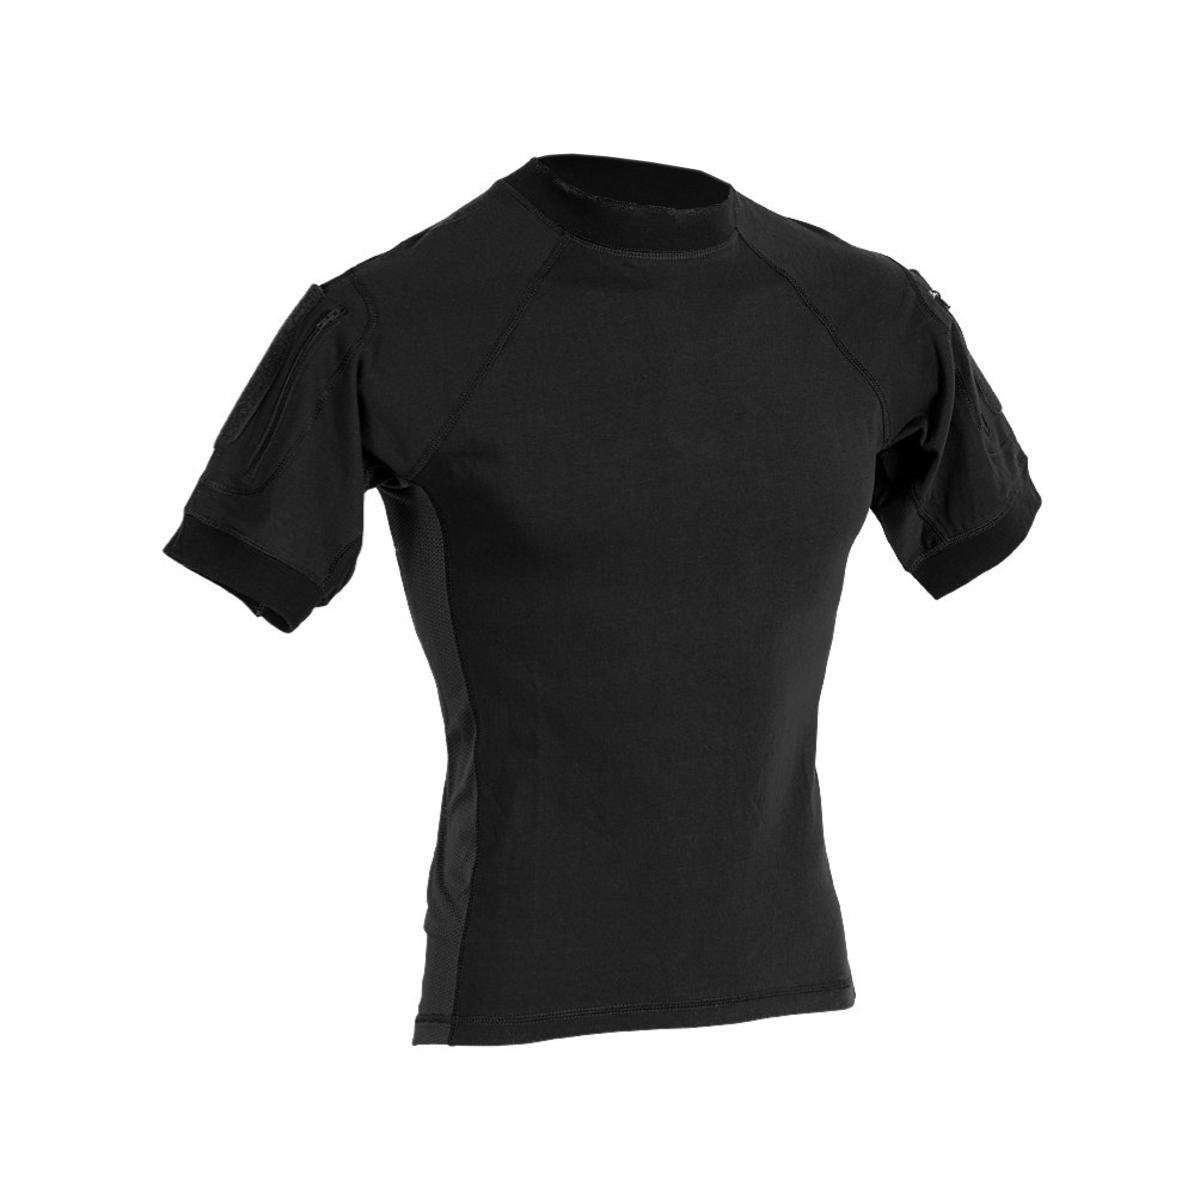 VooDoo Tactical 01-9583001094 Combat Short Sleeve Shirt, Black, Large